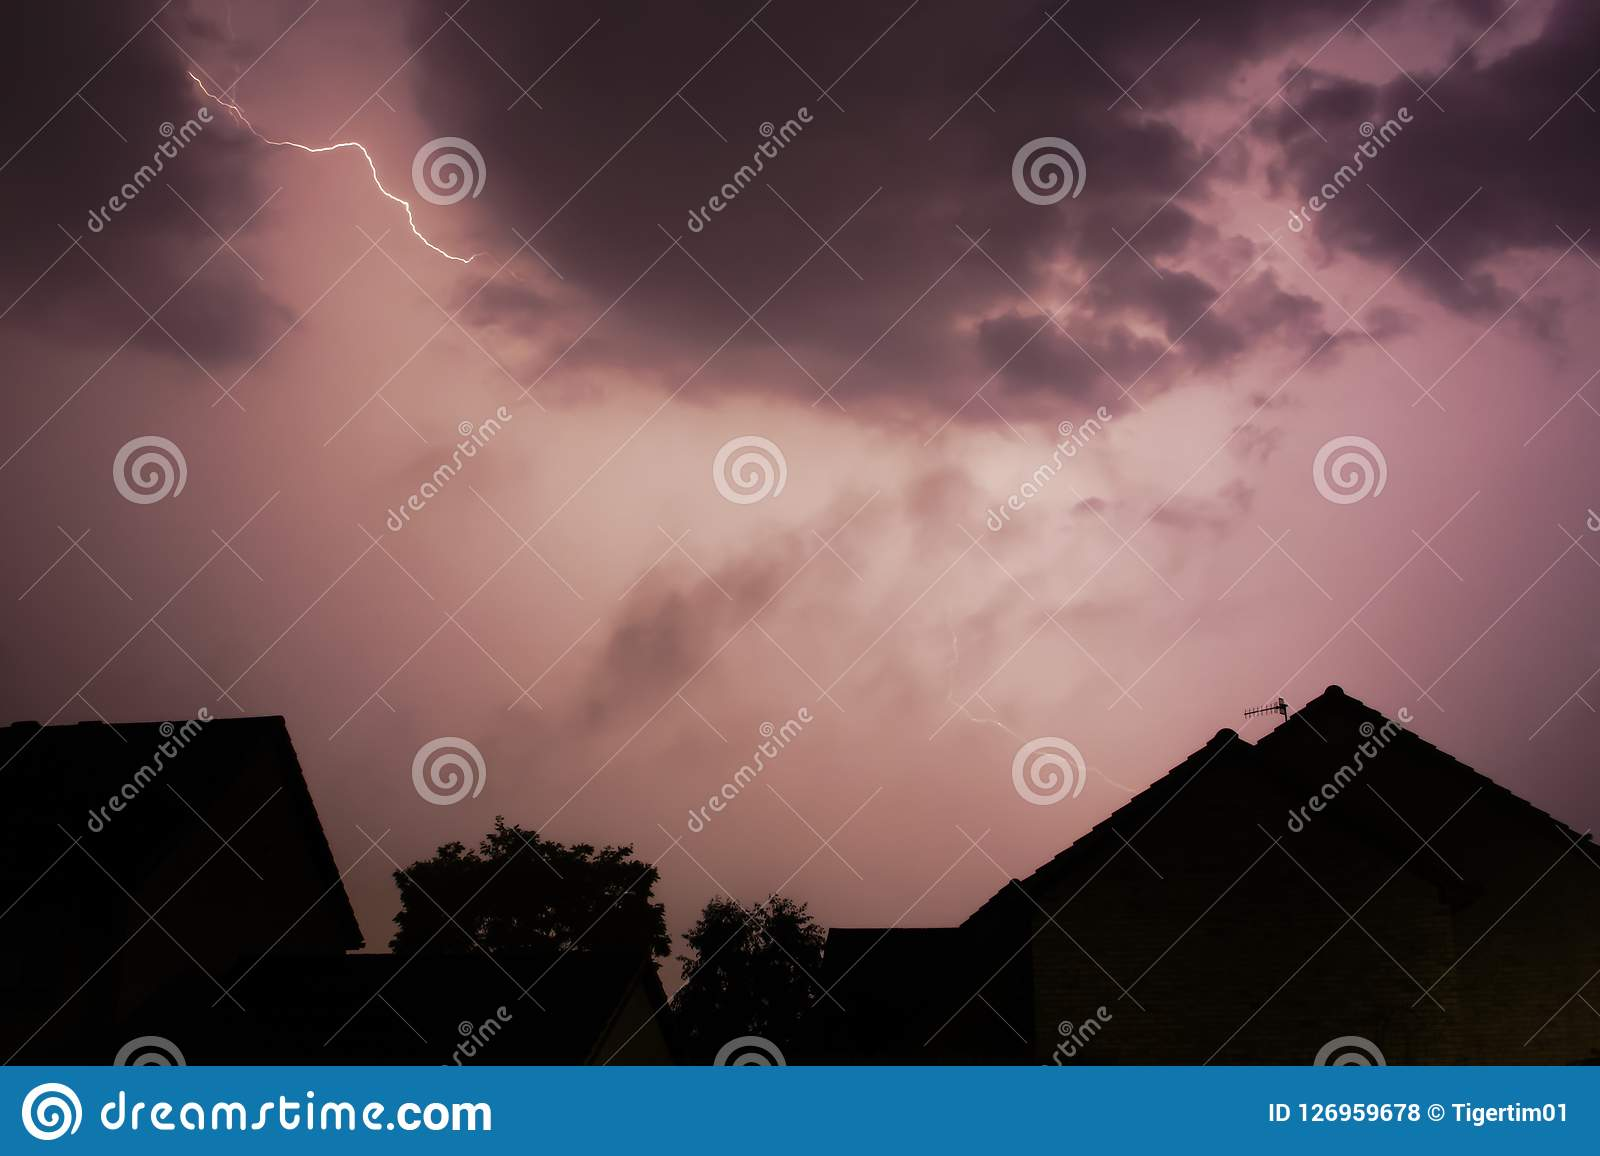 Lightening bolt over houses in the middle of a storm